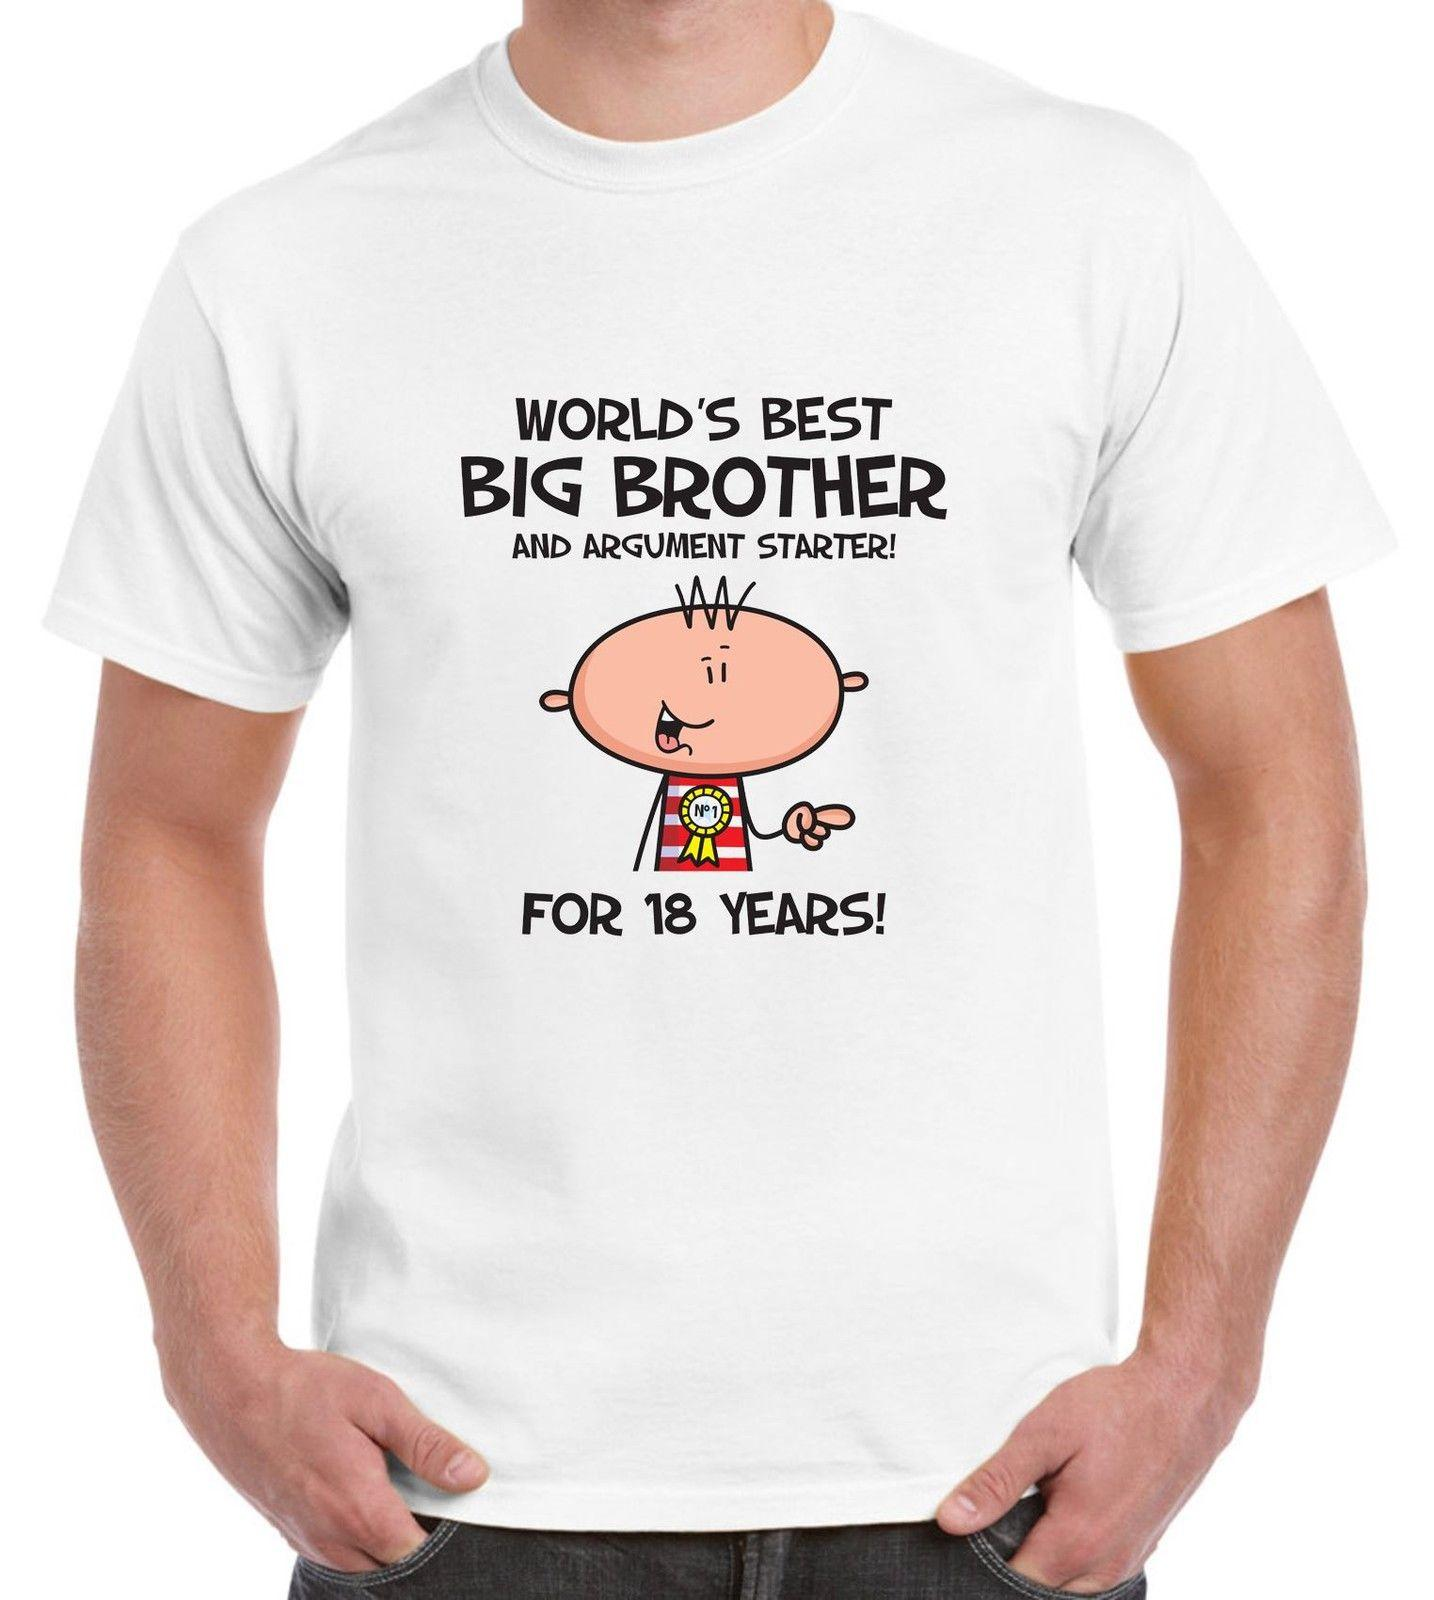 Worlds Best Big Brother MenS 18th Birthday Present T Shirt Gift Witty Tee Shirts Funny From Parodytees24 1572